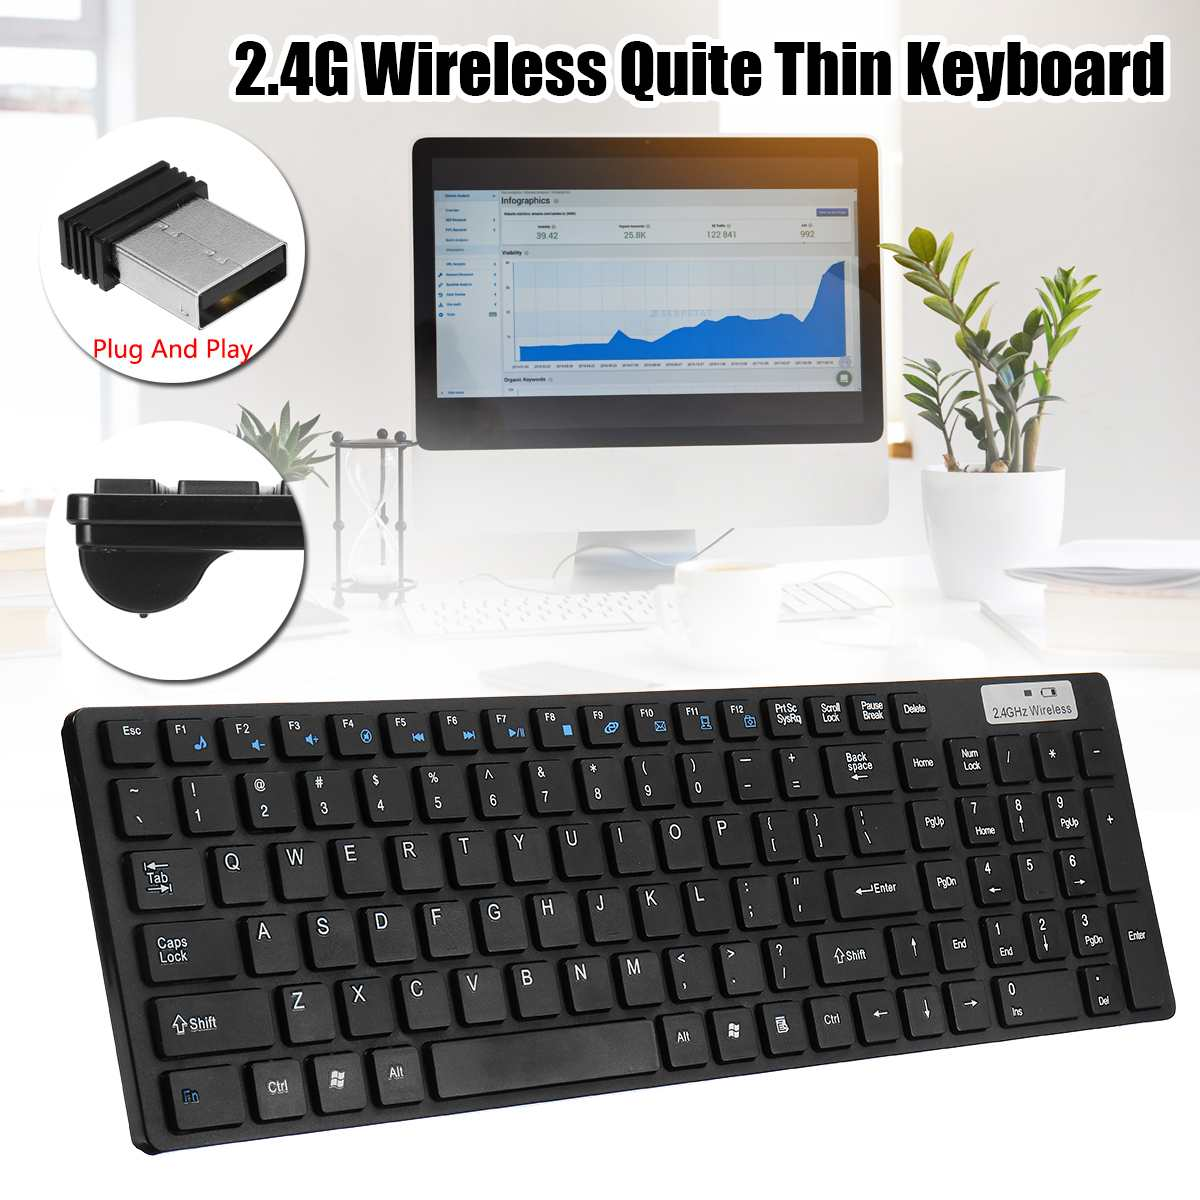 2.4G Wireless Keyboard and Mouse Mini Multimedia Keyboard Mouse Combo Set For Notebook Laptop Macs Desktop PC TV Office Supplies